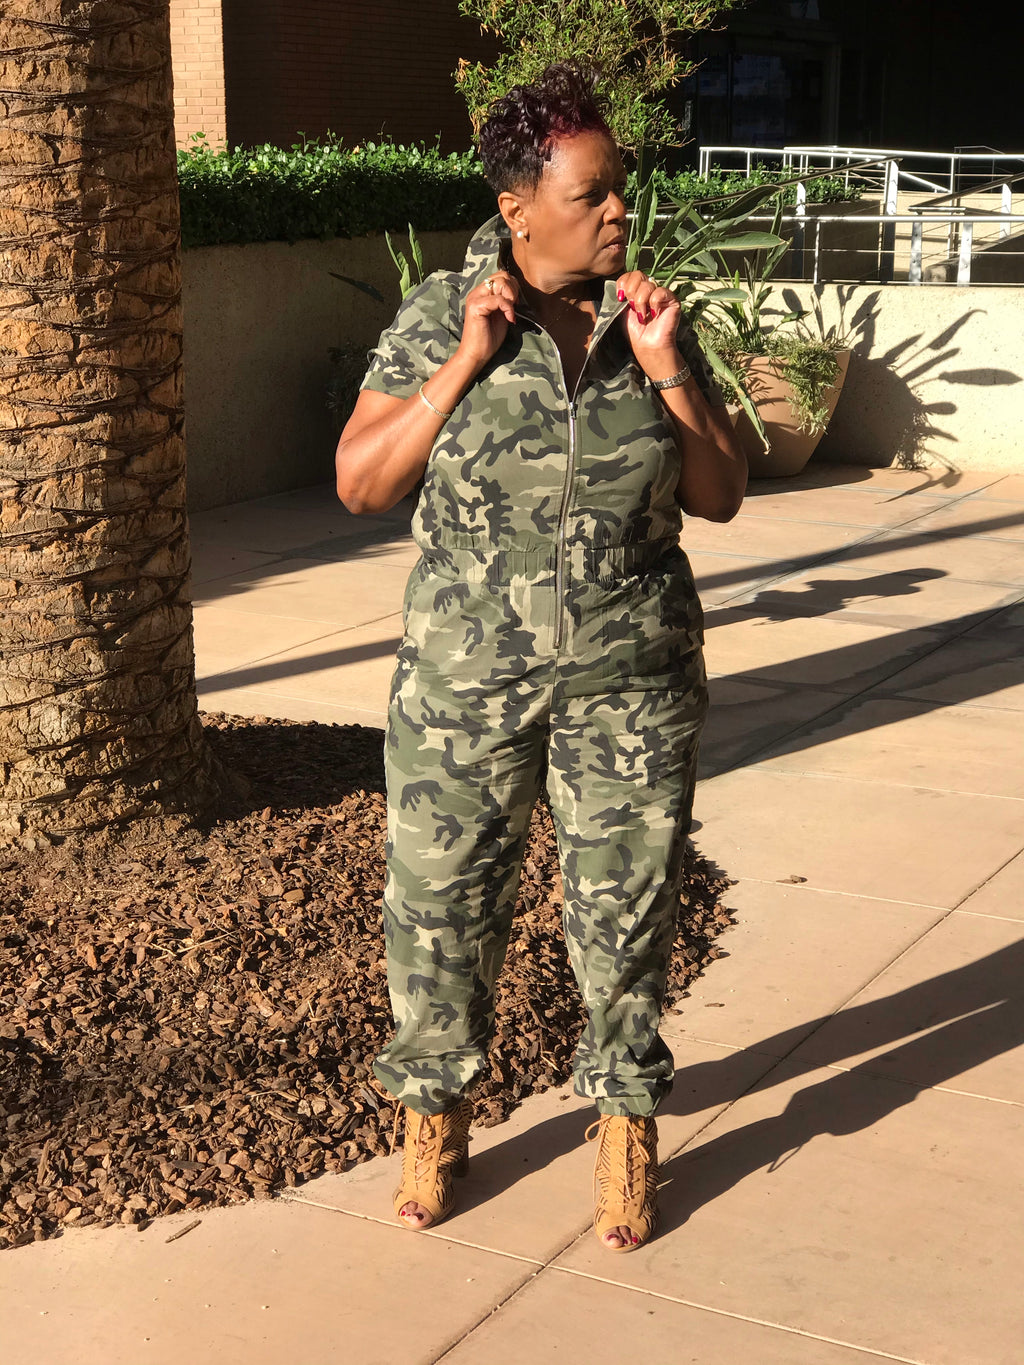 Trinity Camouflage Jumpsuit 15% Off - Shirley Girl Boutique